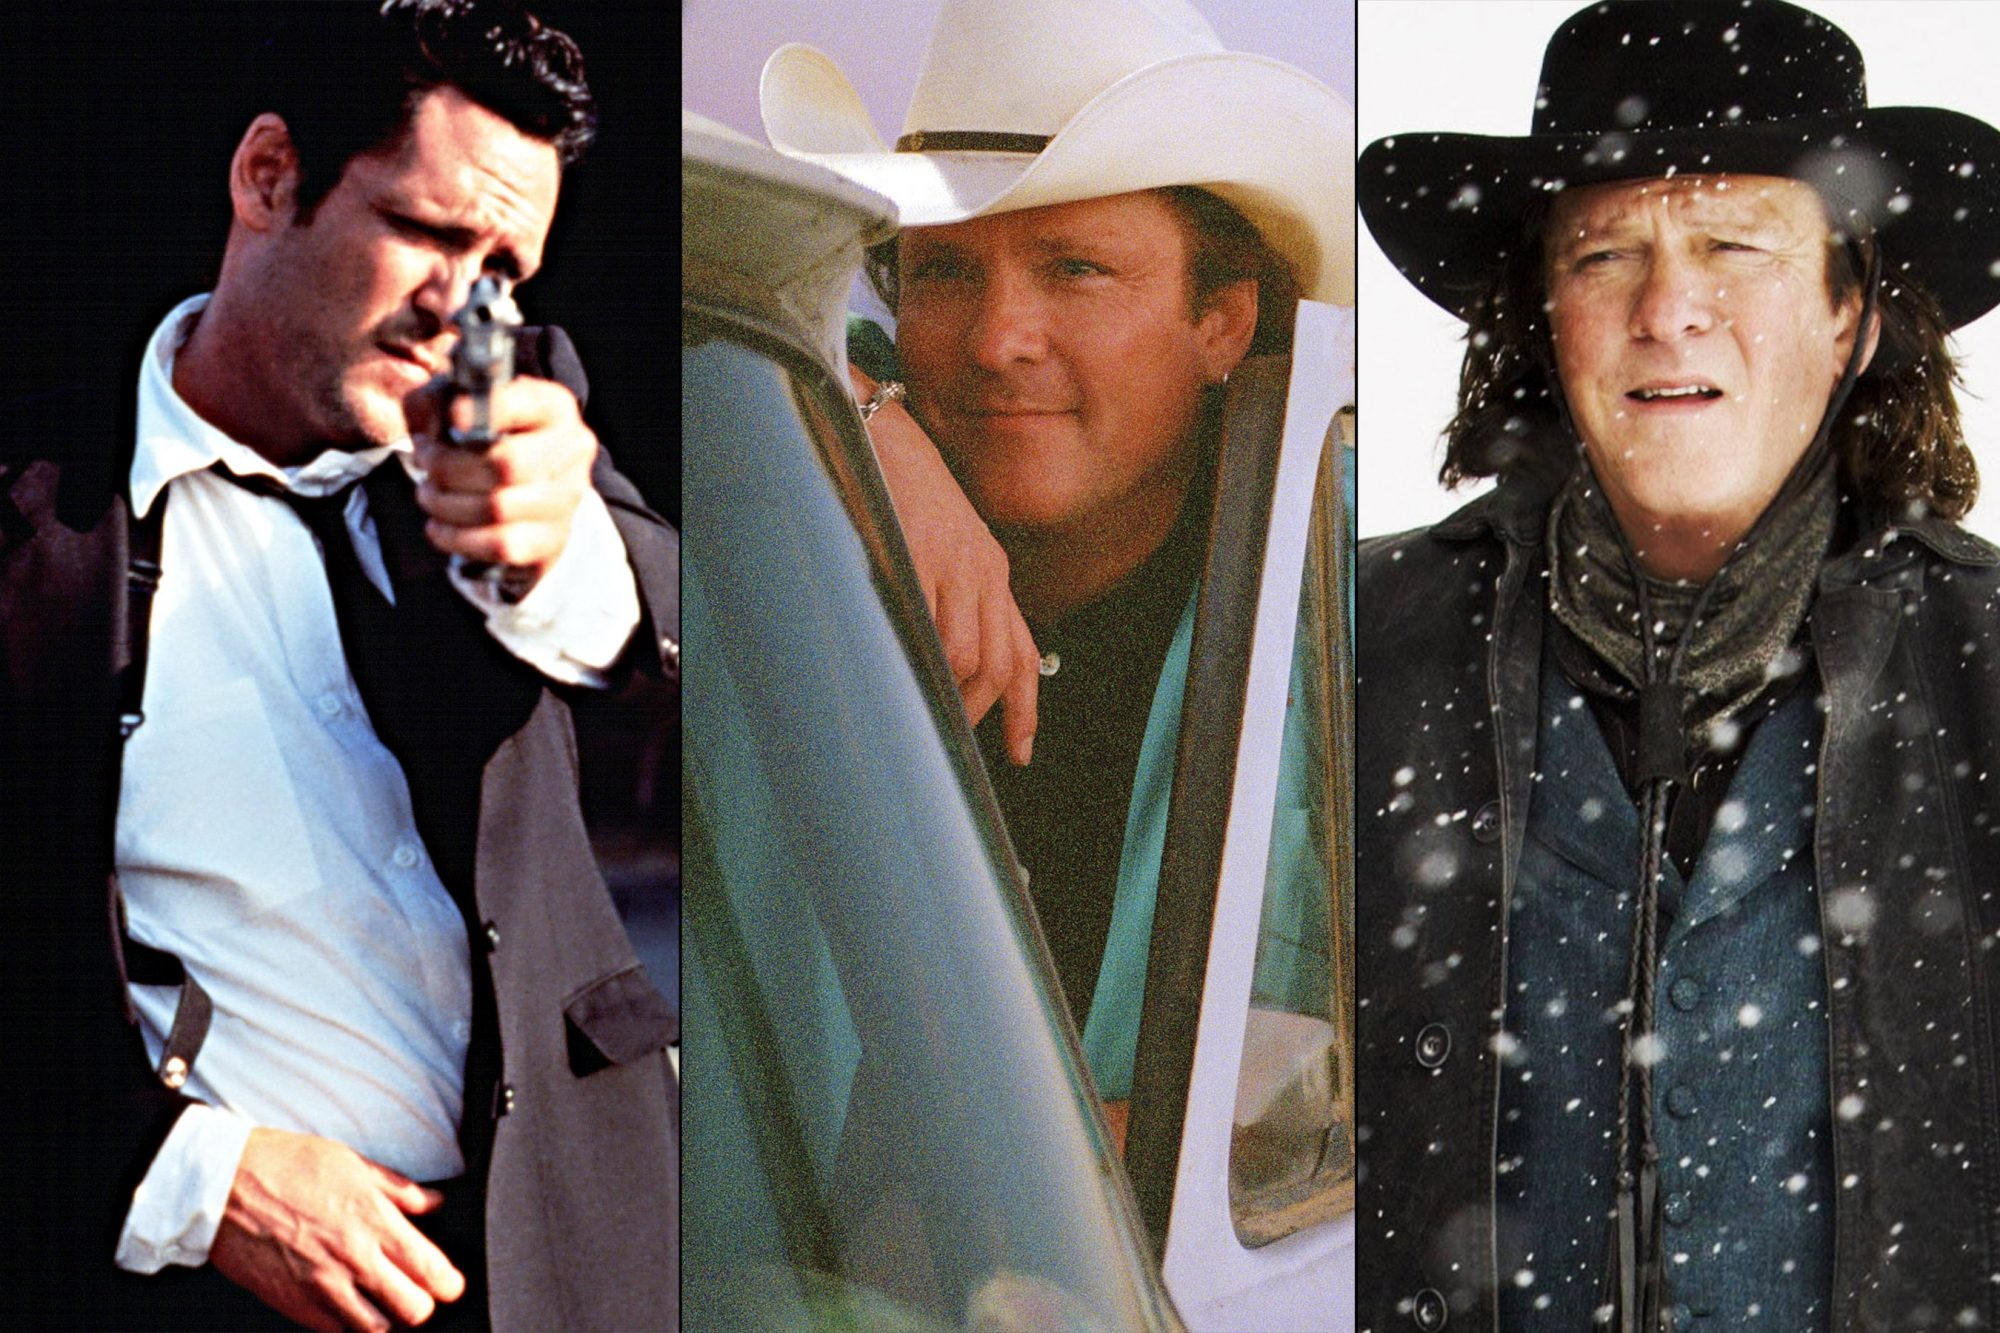 9. Michael Madsen (Reservoir Dogs, Kill Bill: Volume 1, Kill Bill: Volume 2, The Hateful Eight, Once Upon a Time in Hollywood)